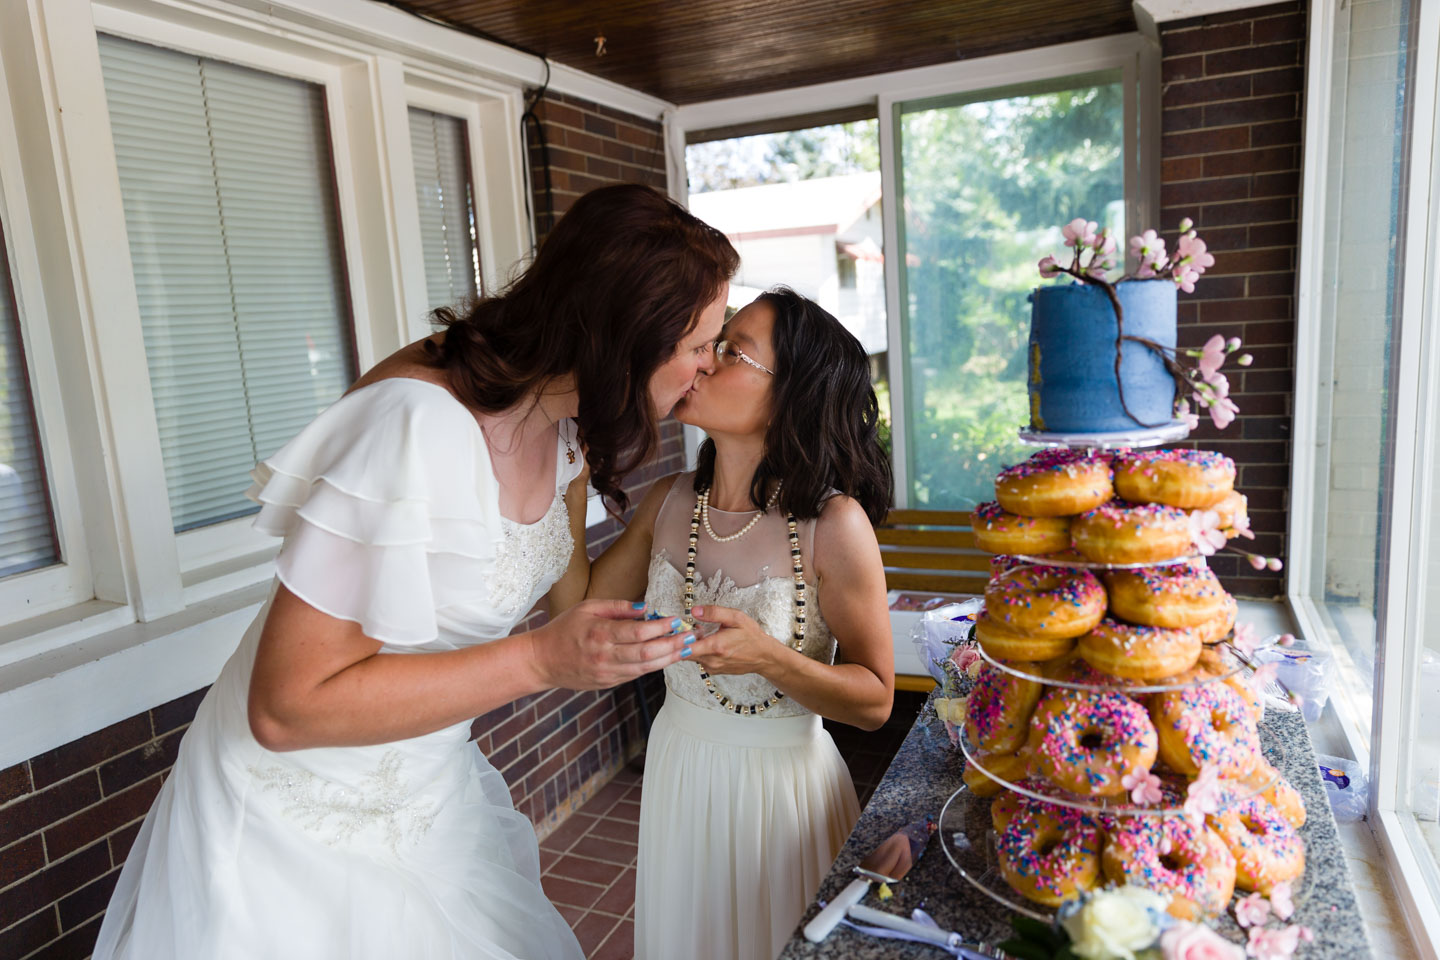 Always a kiss after the cake cutting